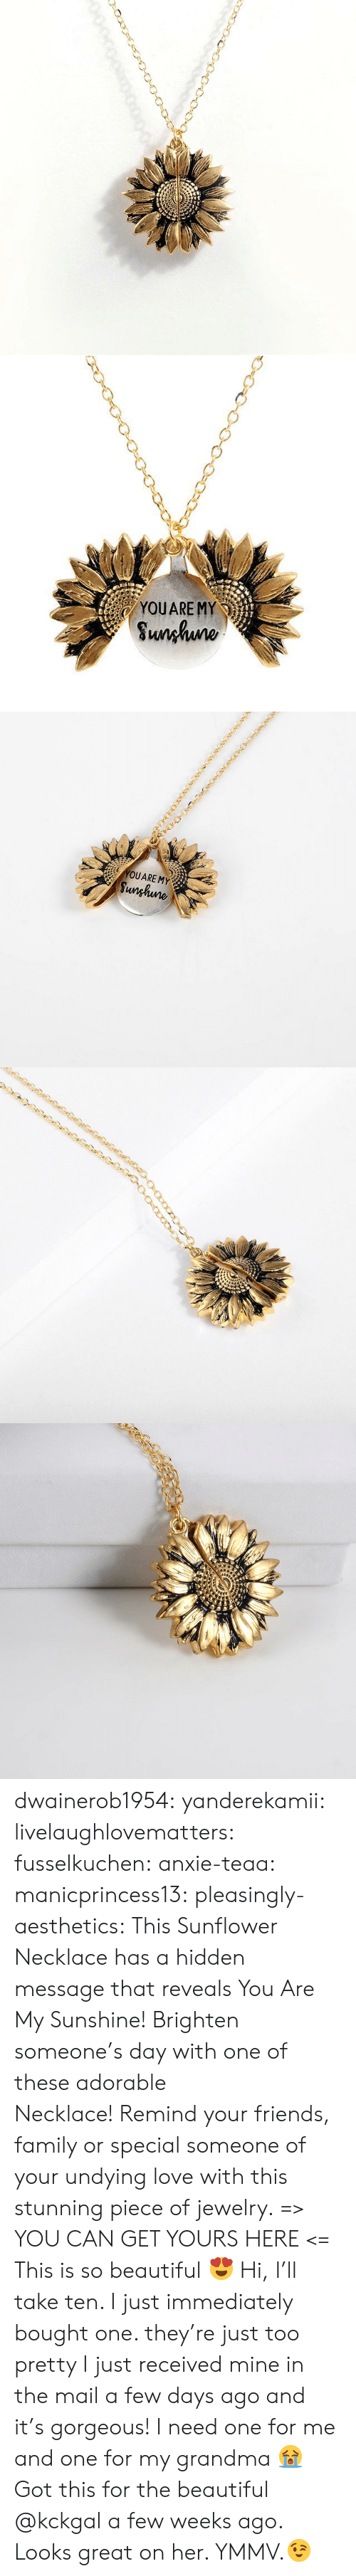 Brighten: YOUARE MY  Sunhuno   YOUARE MY  Sunghune dwainerob1954:  yanderekamii:  livelaughlovematters:  fusselkuchen: anxie-teaa:   manicprincess13:   pleasingly-aesthetics:  This Sunflower Necklace has a hidden message that reveals You Are My Sunshine! Brighten someone's day with one of these adorable Necklace! Remind your friends, family or special someone of your undying love with this stunning piece of jewelry. => YOU CAN GET YOURS HERE <=   This is so beautiful 😍    Hi, I'll take ten.    I just immediately bought one. they're just too pretty   I just received mine in the mail a few days ago and it's gorgeous!  I need one for me and one for my grandma 😭  Got this for the beautiful @kckgal a few weeks ago.  Looks great on her. YMMV.😉